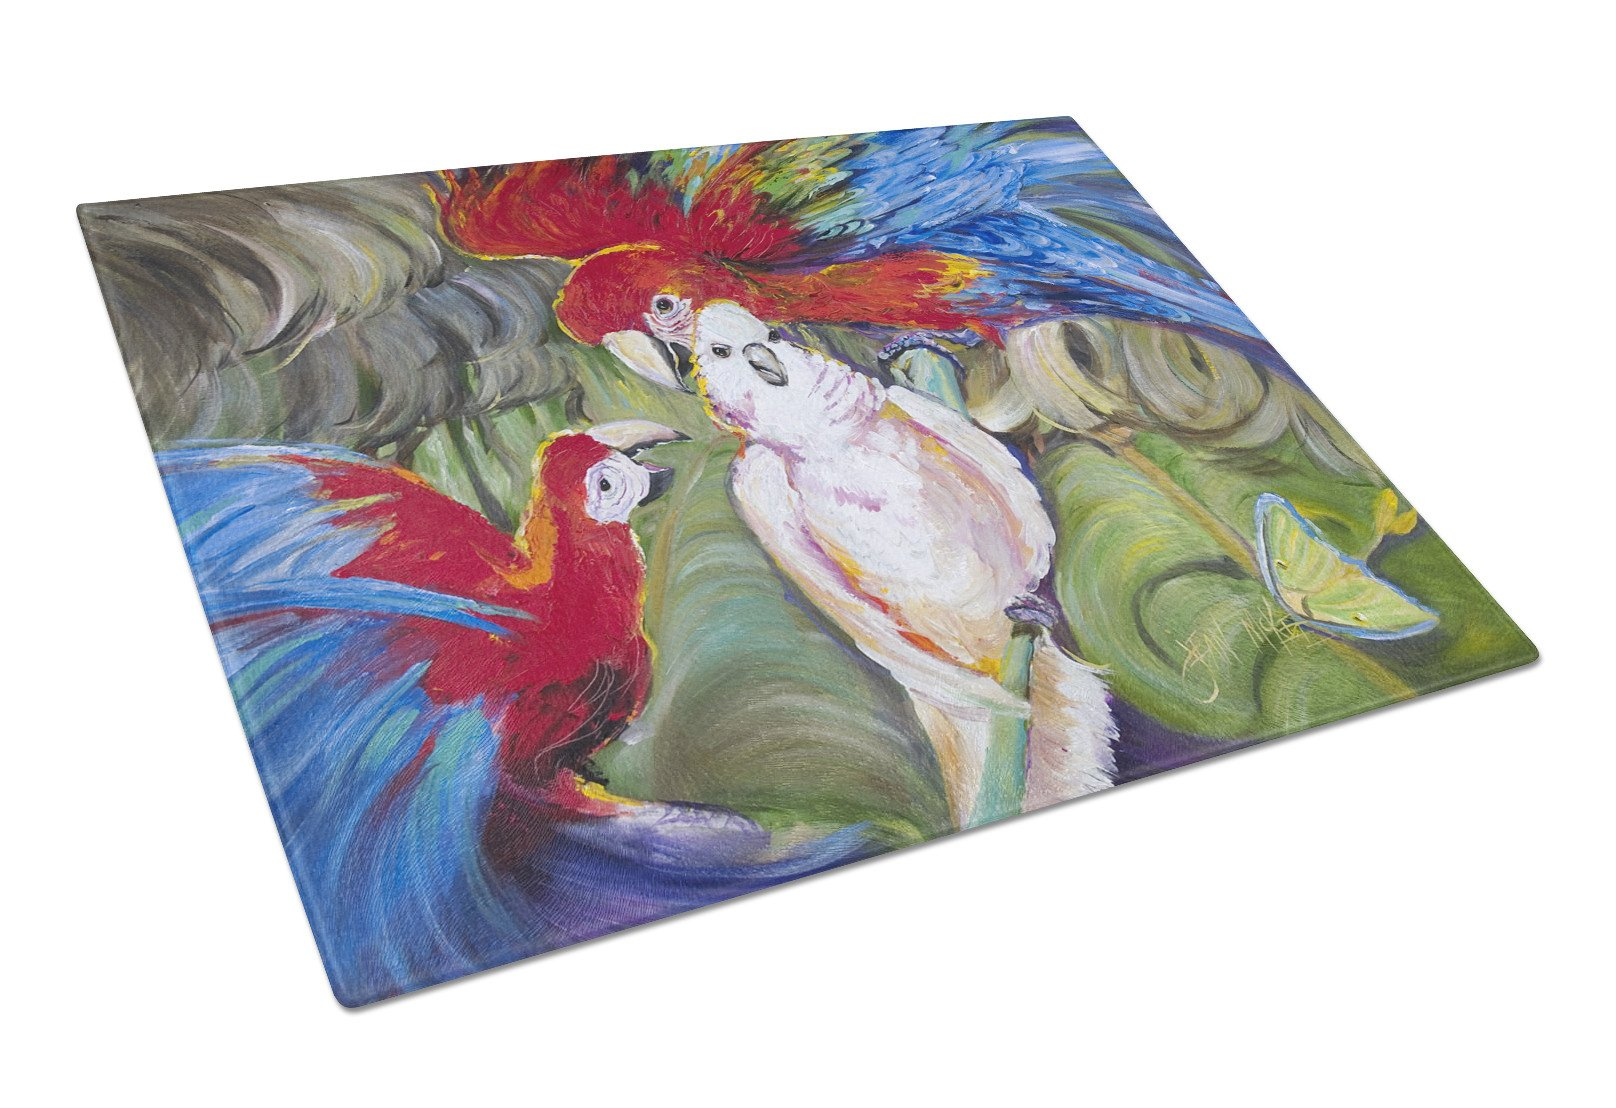 Menage-a-trois Parrots Glass Cutting Board Large JMK1018LCB by Caroline's Treasures